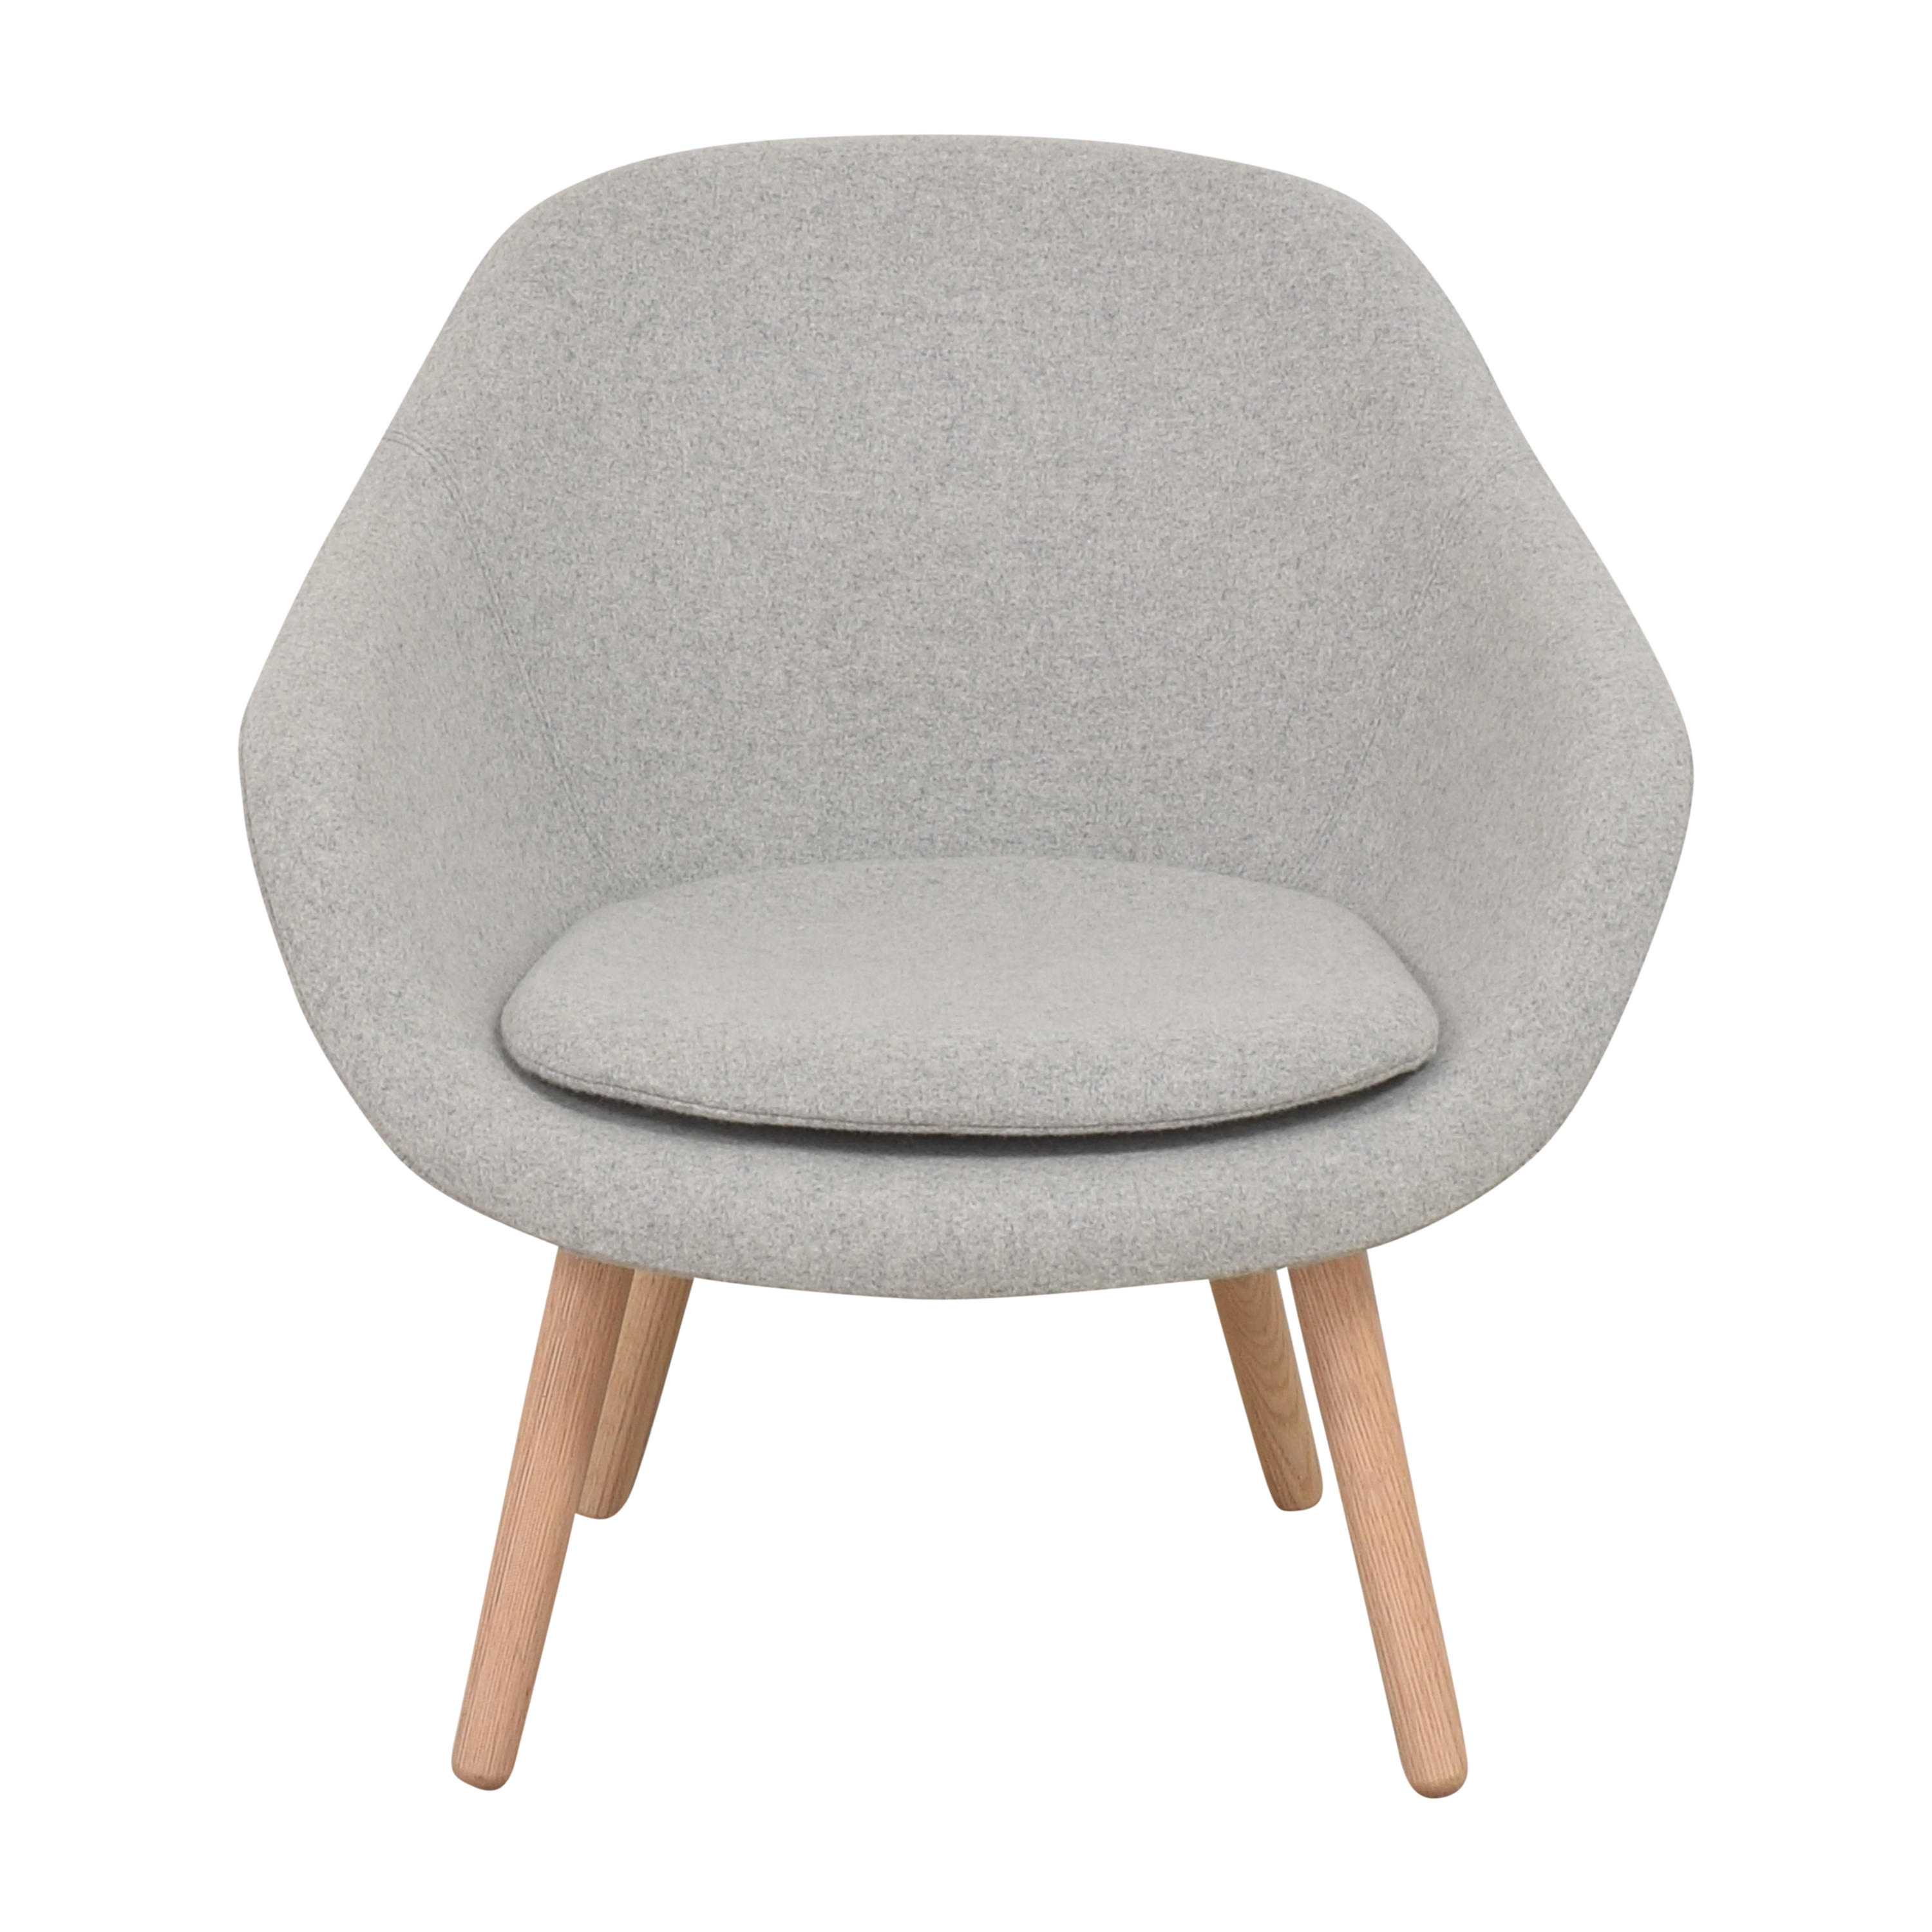 Hay Hay A Lounge 82 Arm Chair with Ottoman Chairs